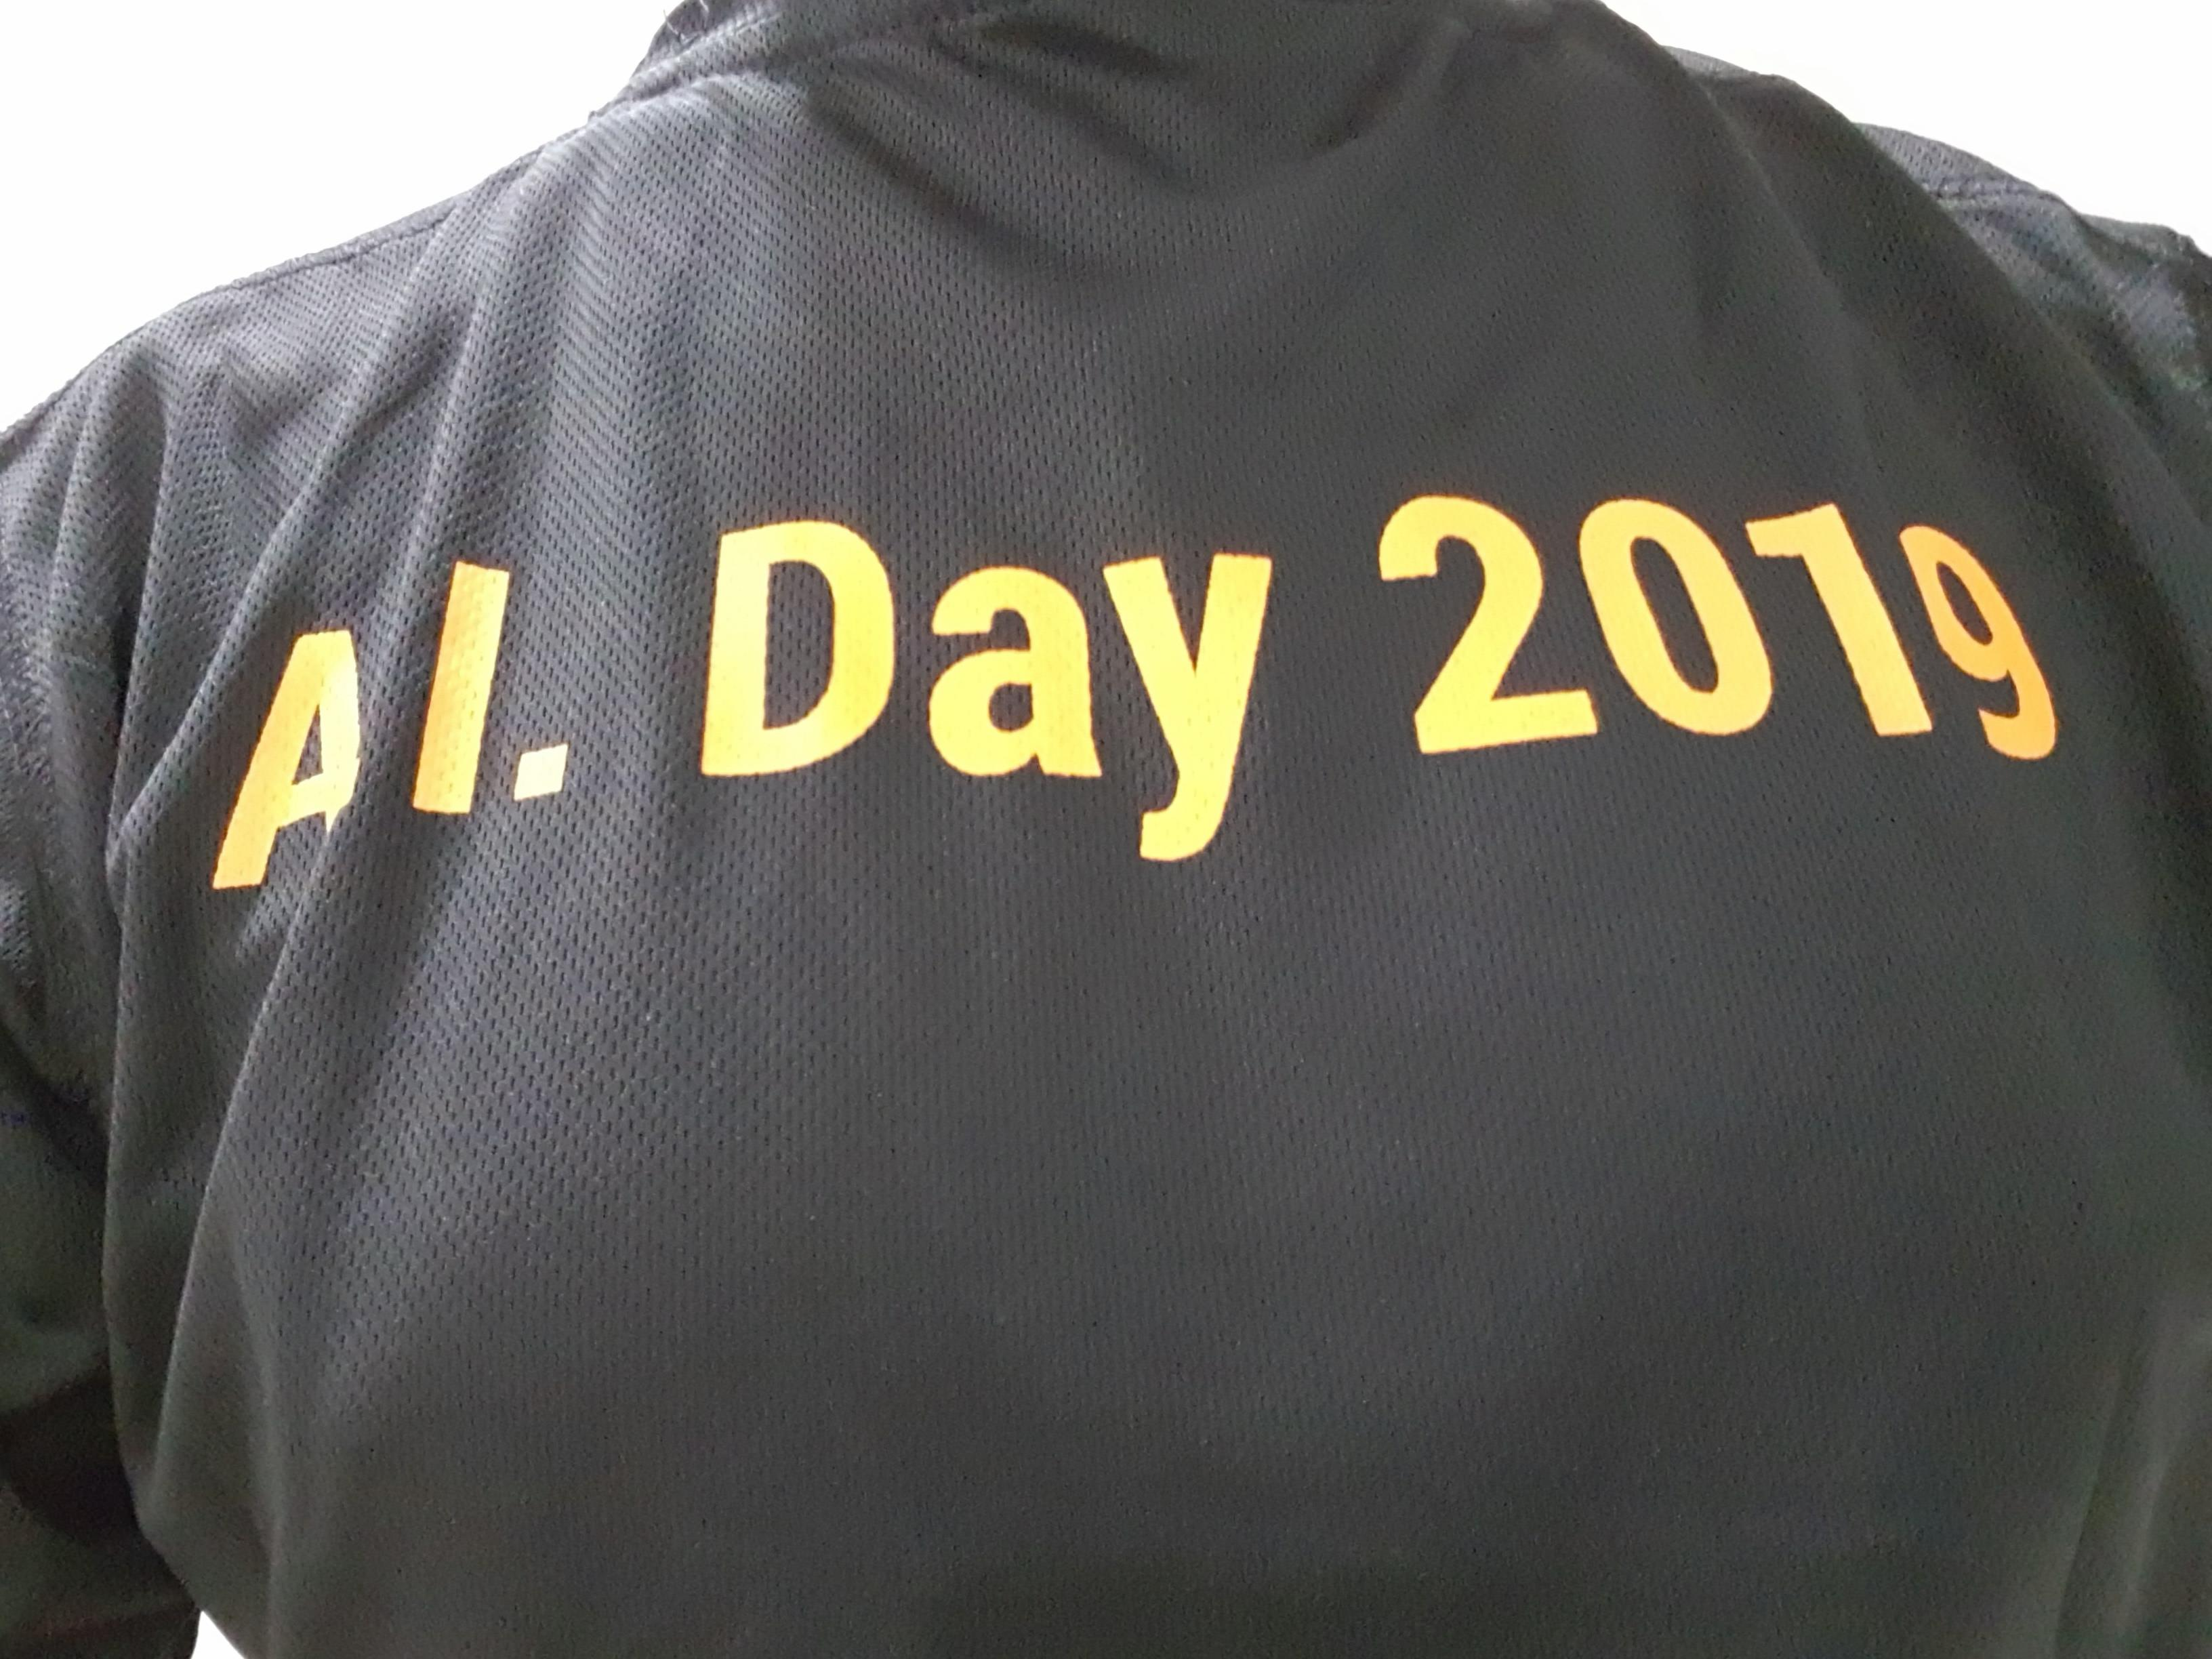 A.I. Day